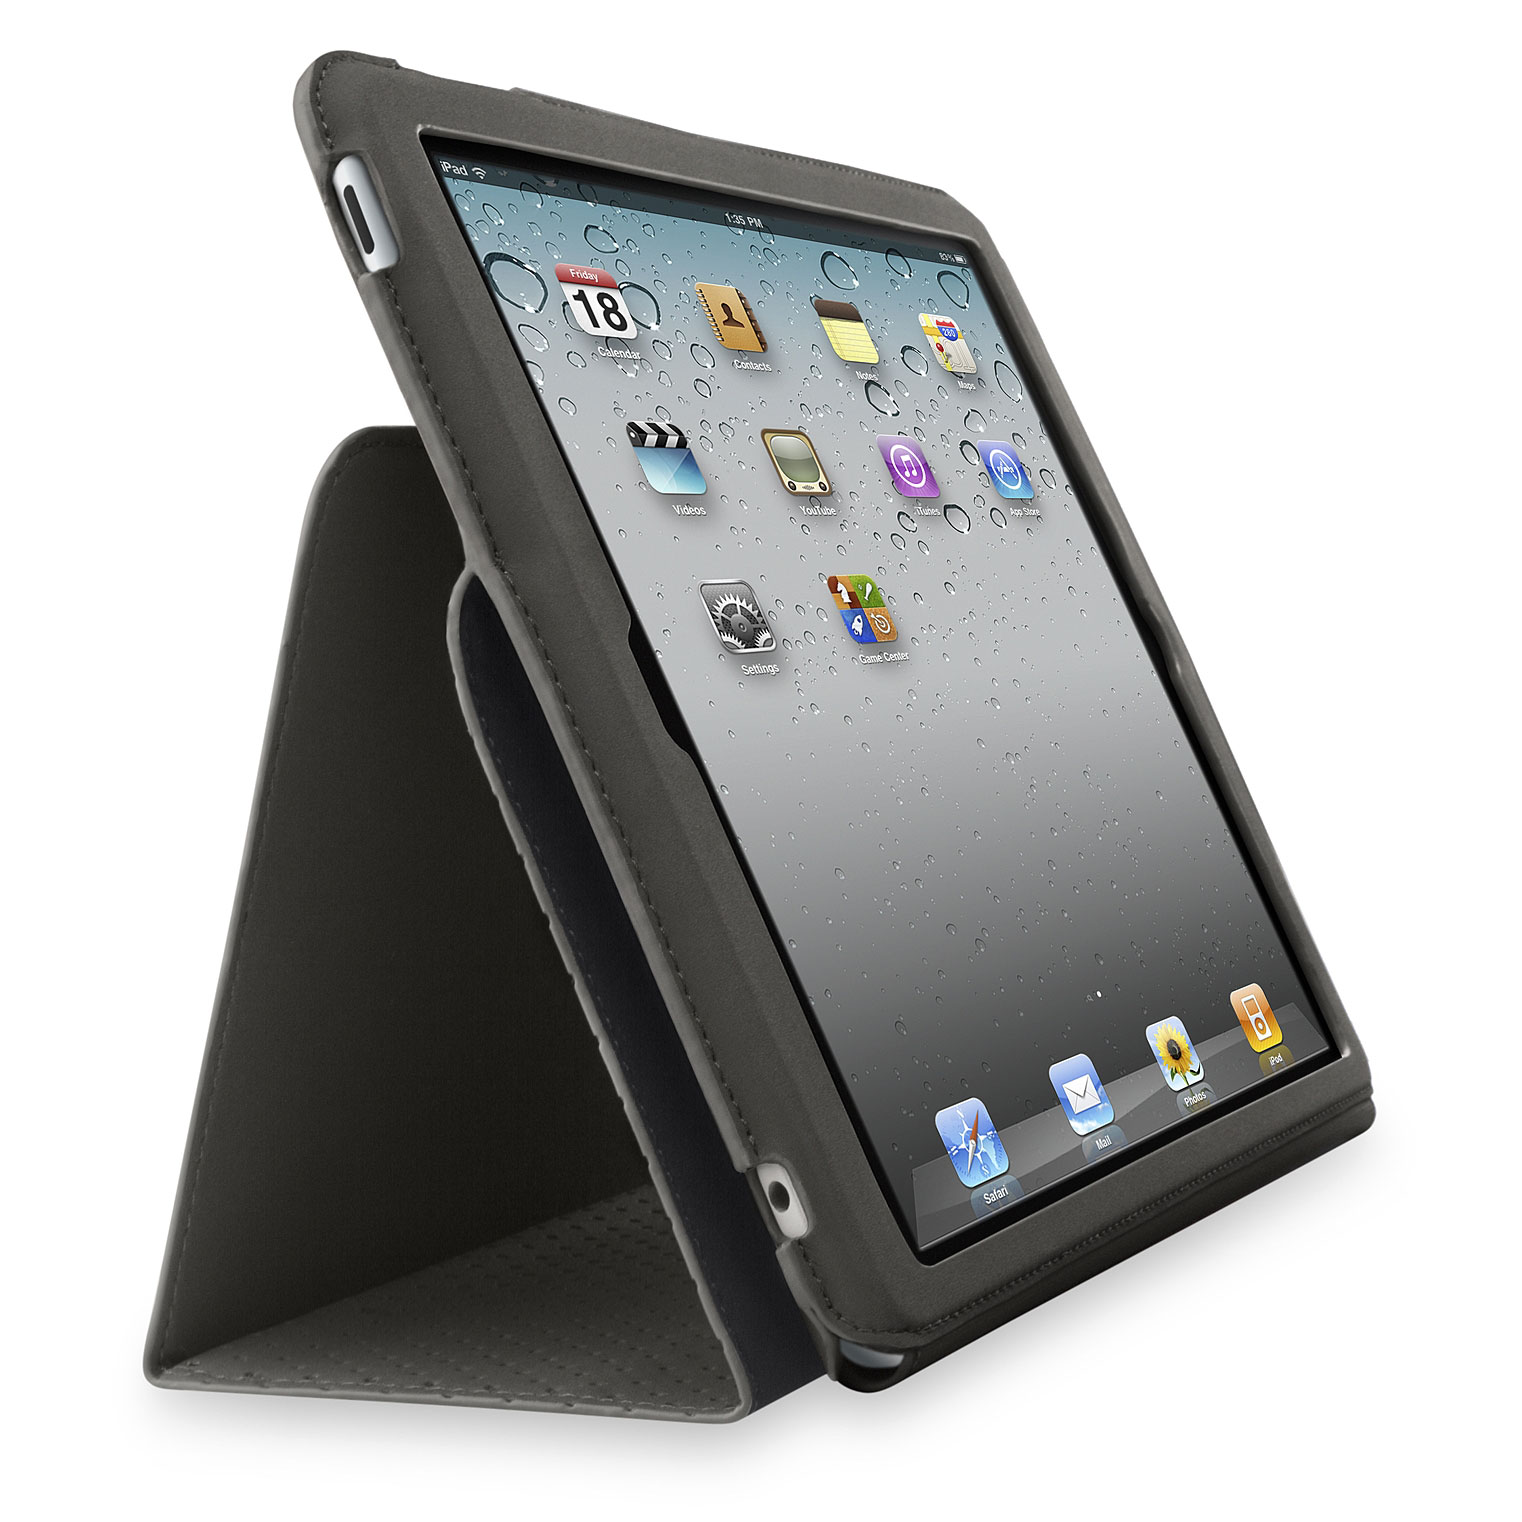 belkin slim folio pour ipad 2 etui tablette belkin sur. Black Bedroom Furniture Sets. Home Design Ideas